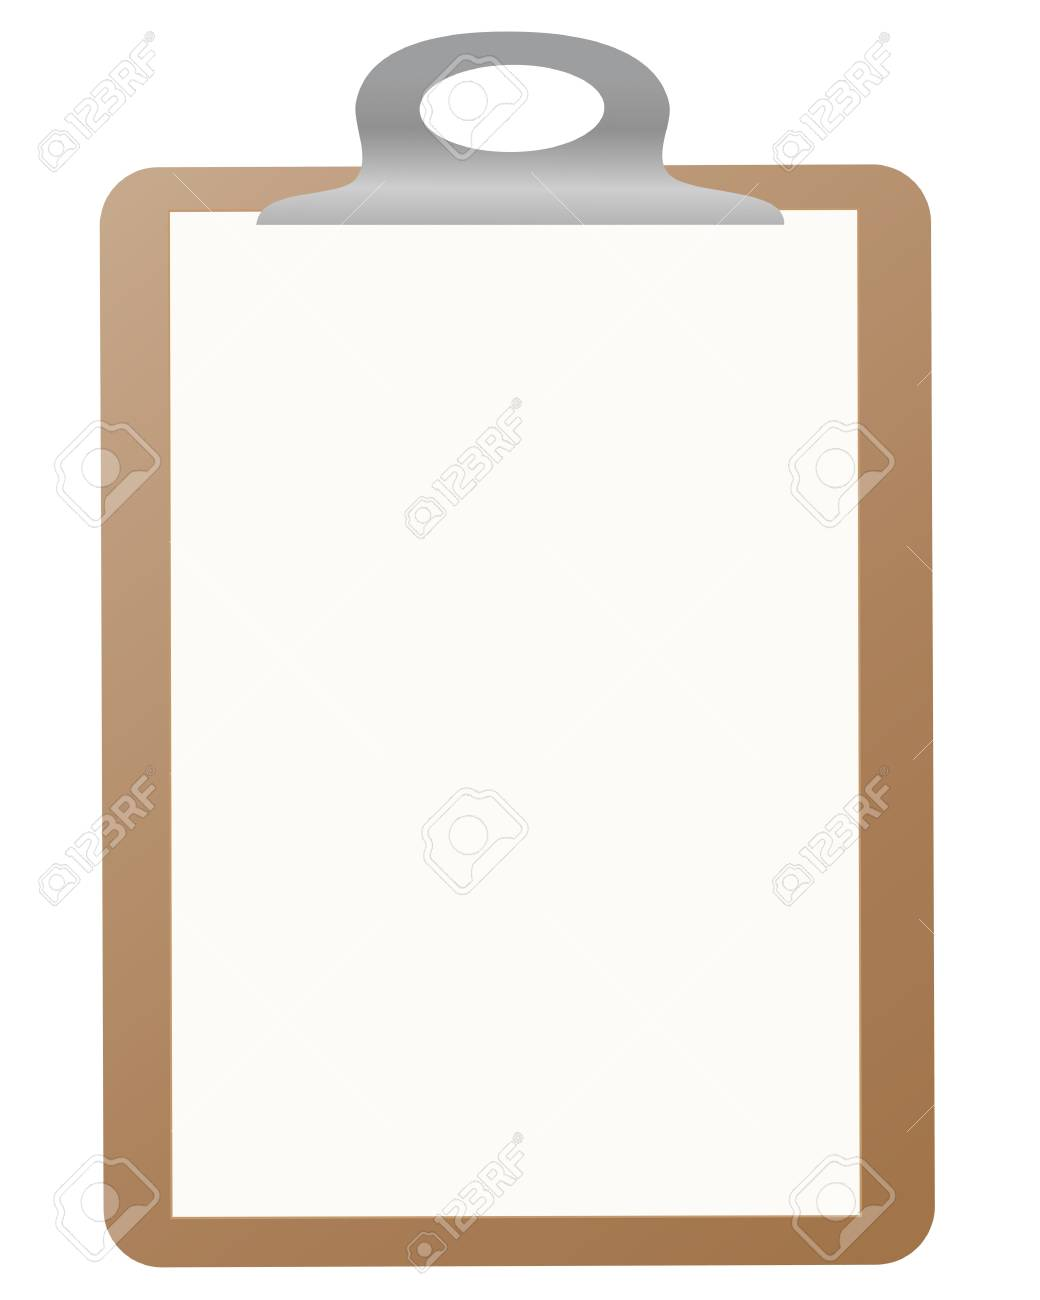 This is illustration of a Clipboard. Web icon. Stock Illustration - 11466099